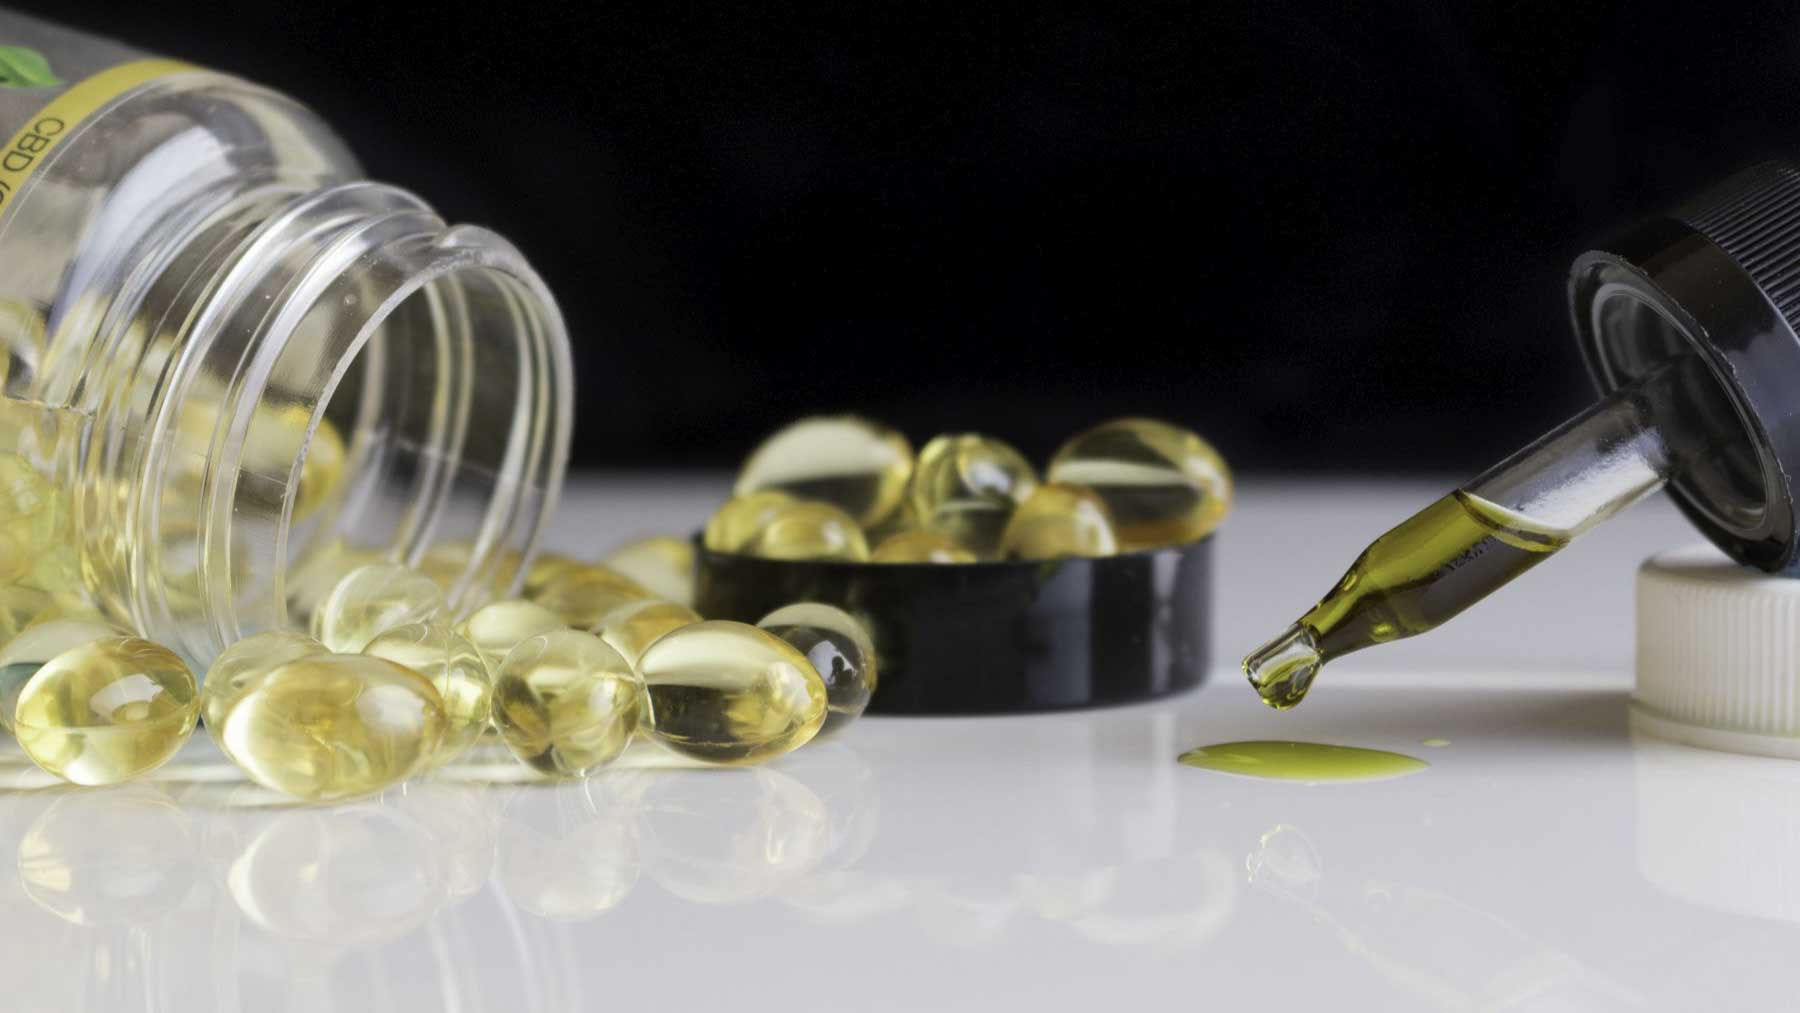 CBD capsules from a plastic bottle lying on a white surface